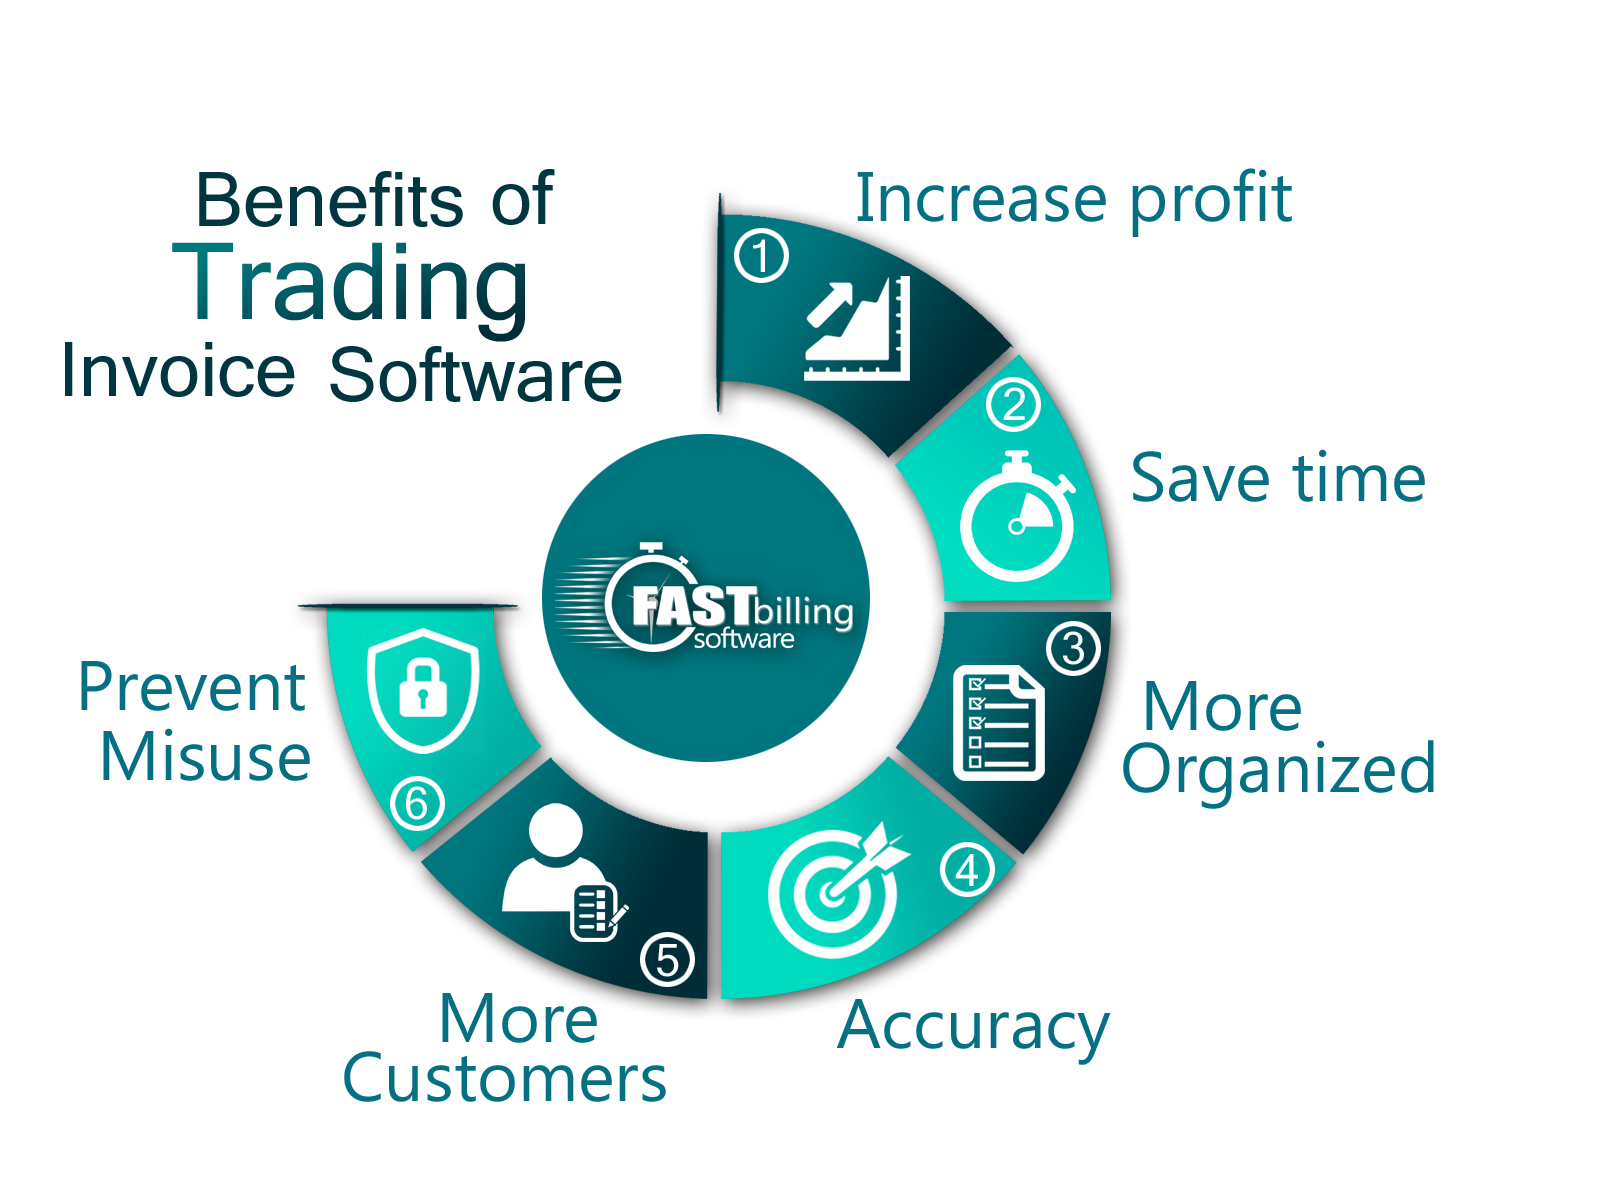 Benefits of trading billing software